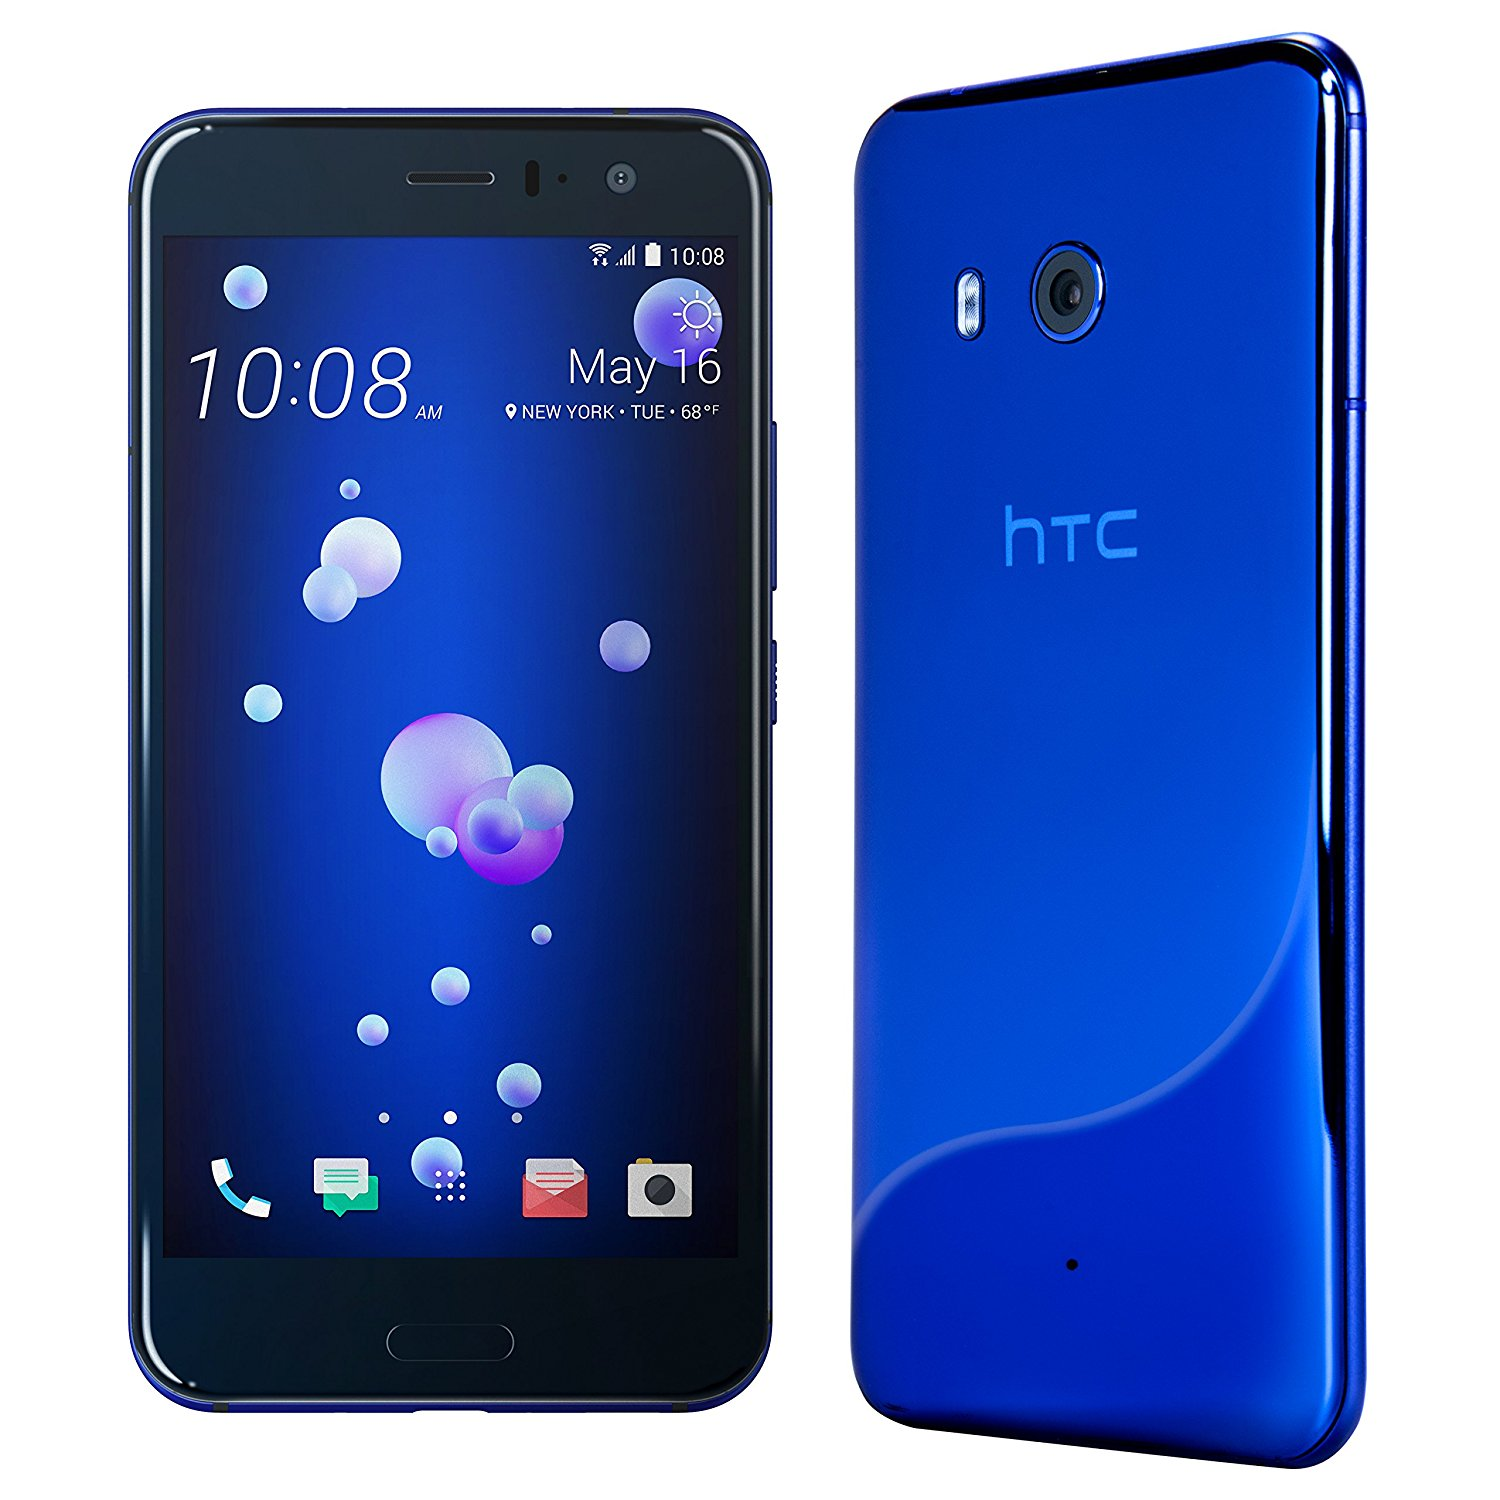 HTC U11 – The World's first squeezable phone